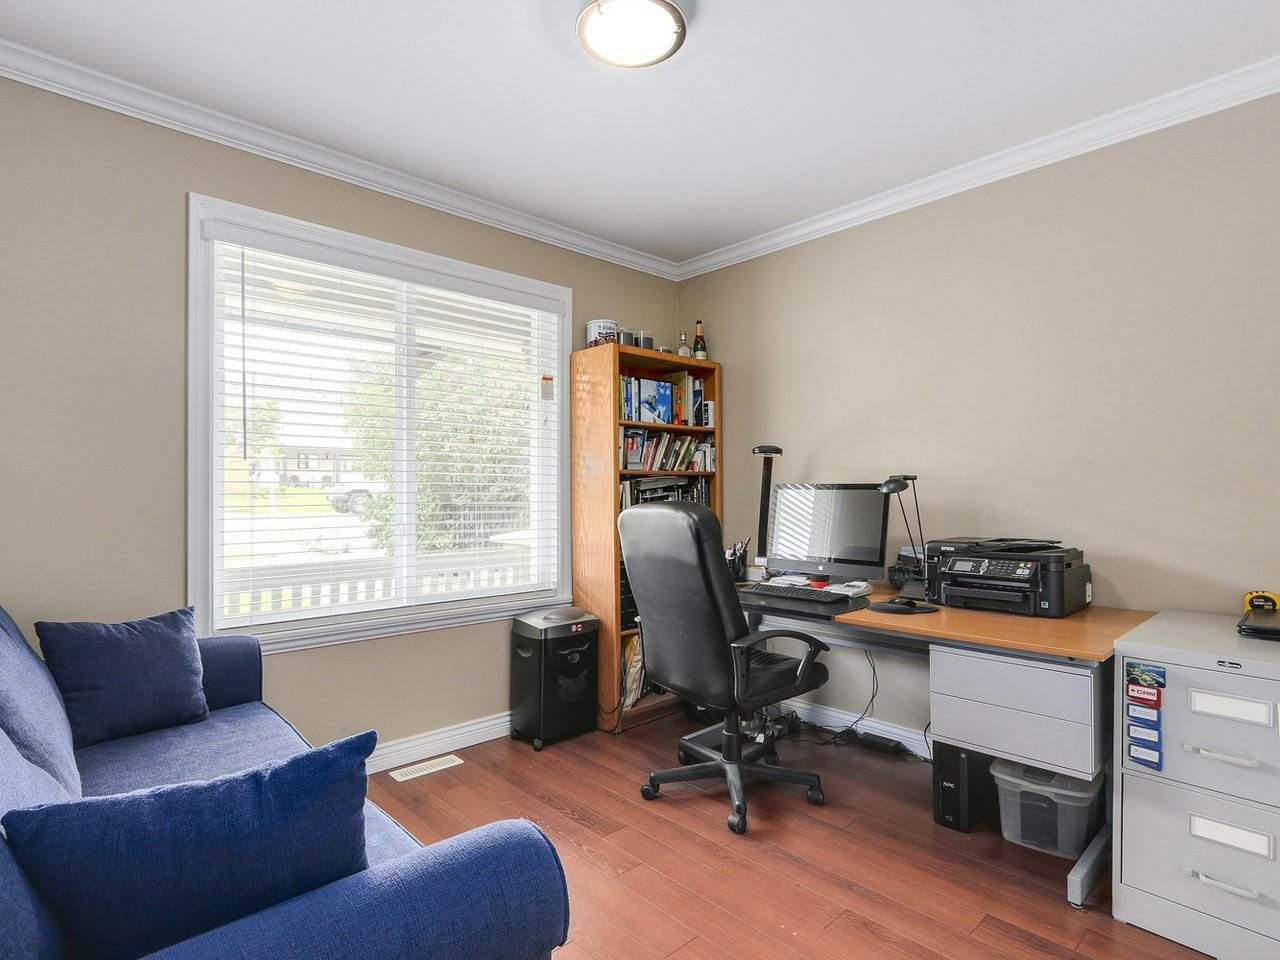 Photo 18: Photos: 1044B CHARLAND Avenue in Coquitlam: Central Coquitlam House 1/2 Duplex for sale : MLS®# R2172343